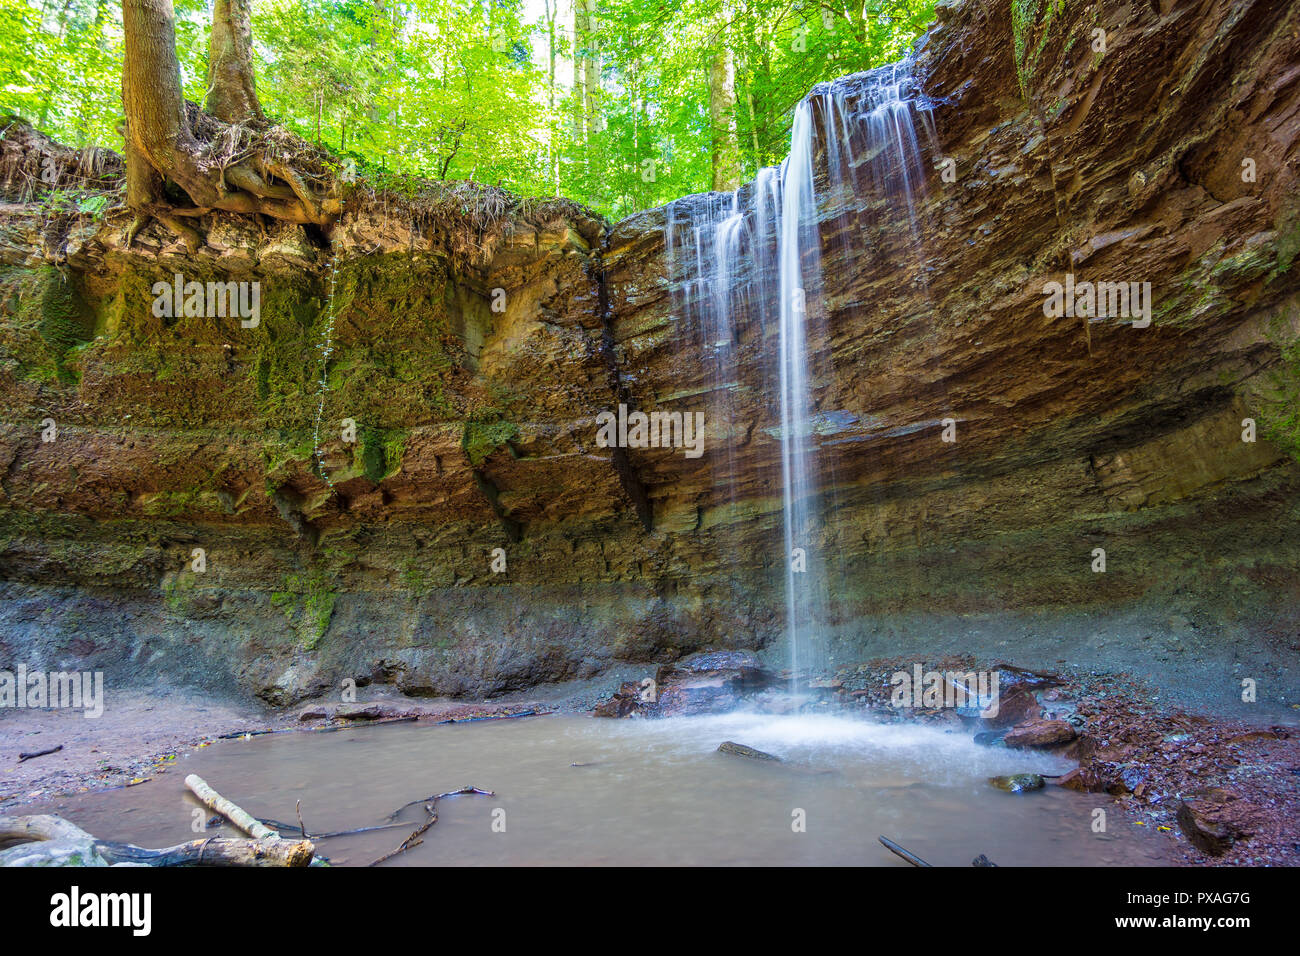 Germany, Green woodland and waterfall of Hoerschbach canyon - Stock Image